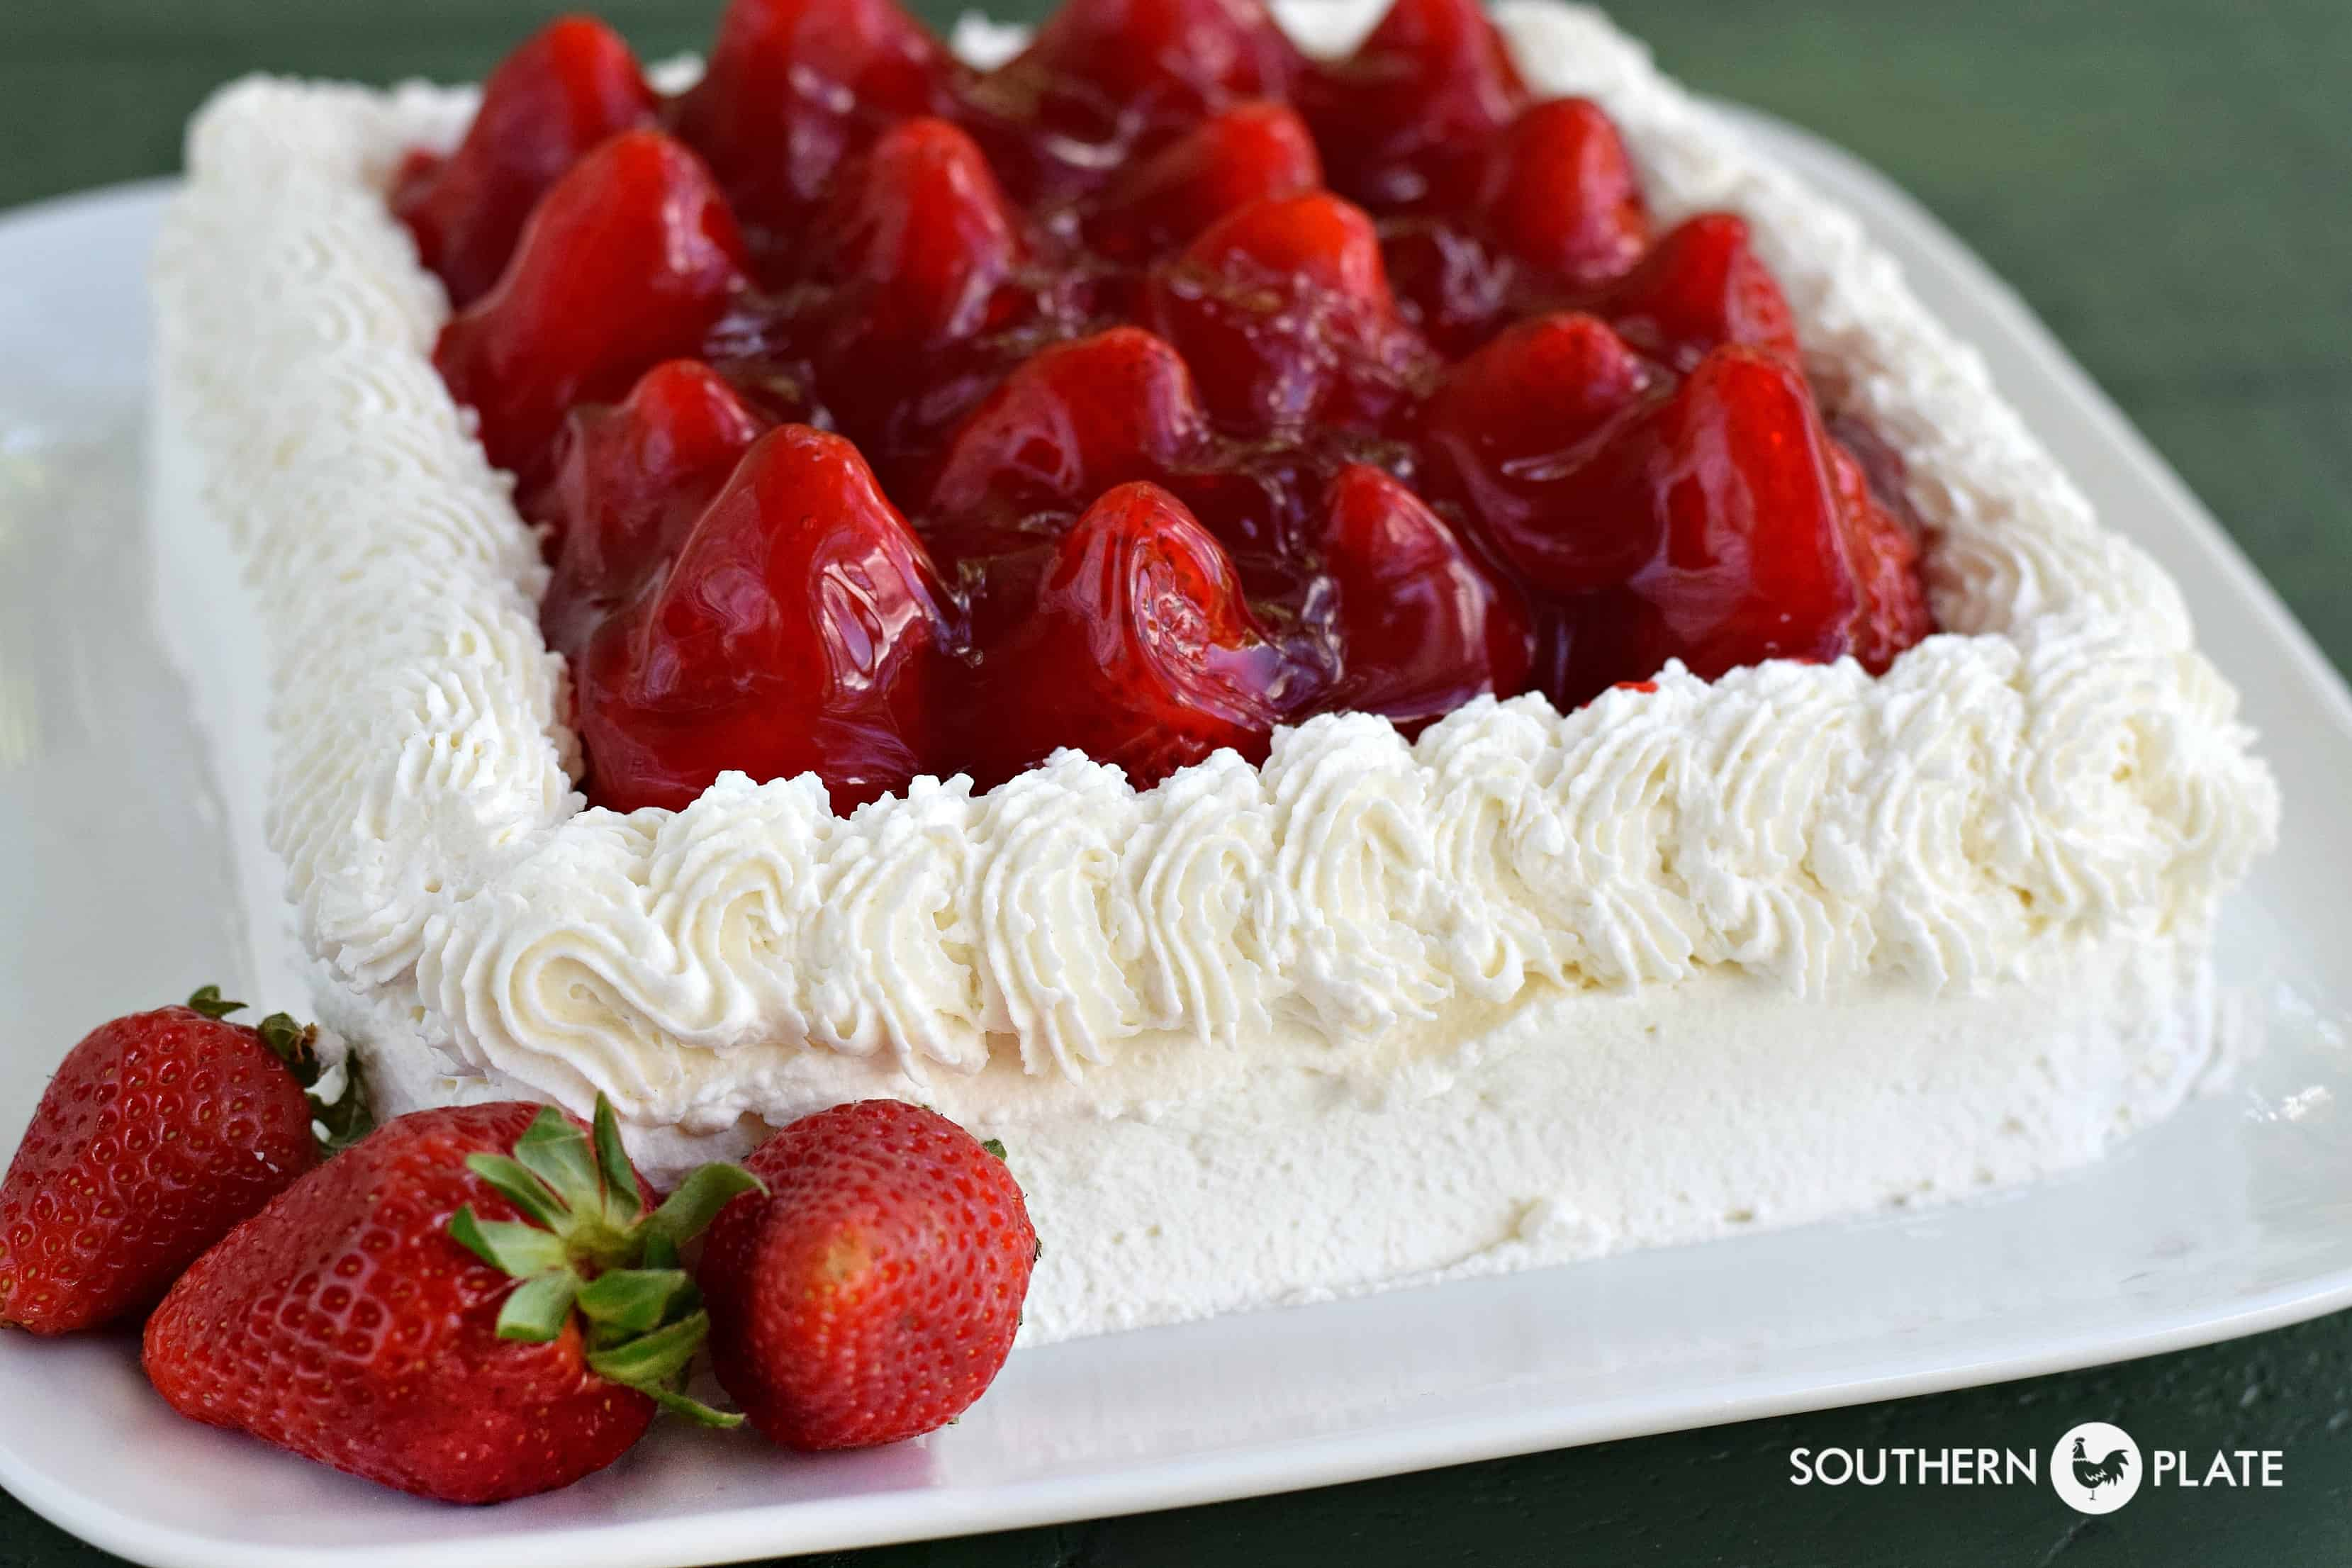 Cake With Whipped Cream Frosting And Strawberries : That Strawberry Cake :) Southern Plate